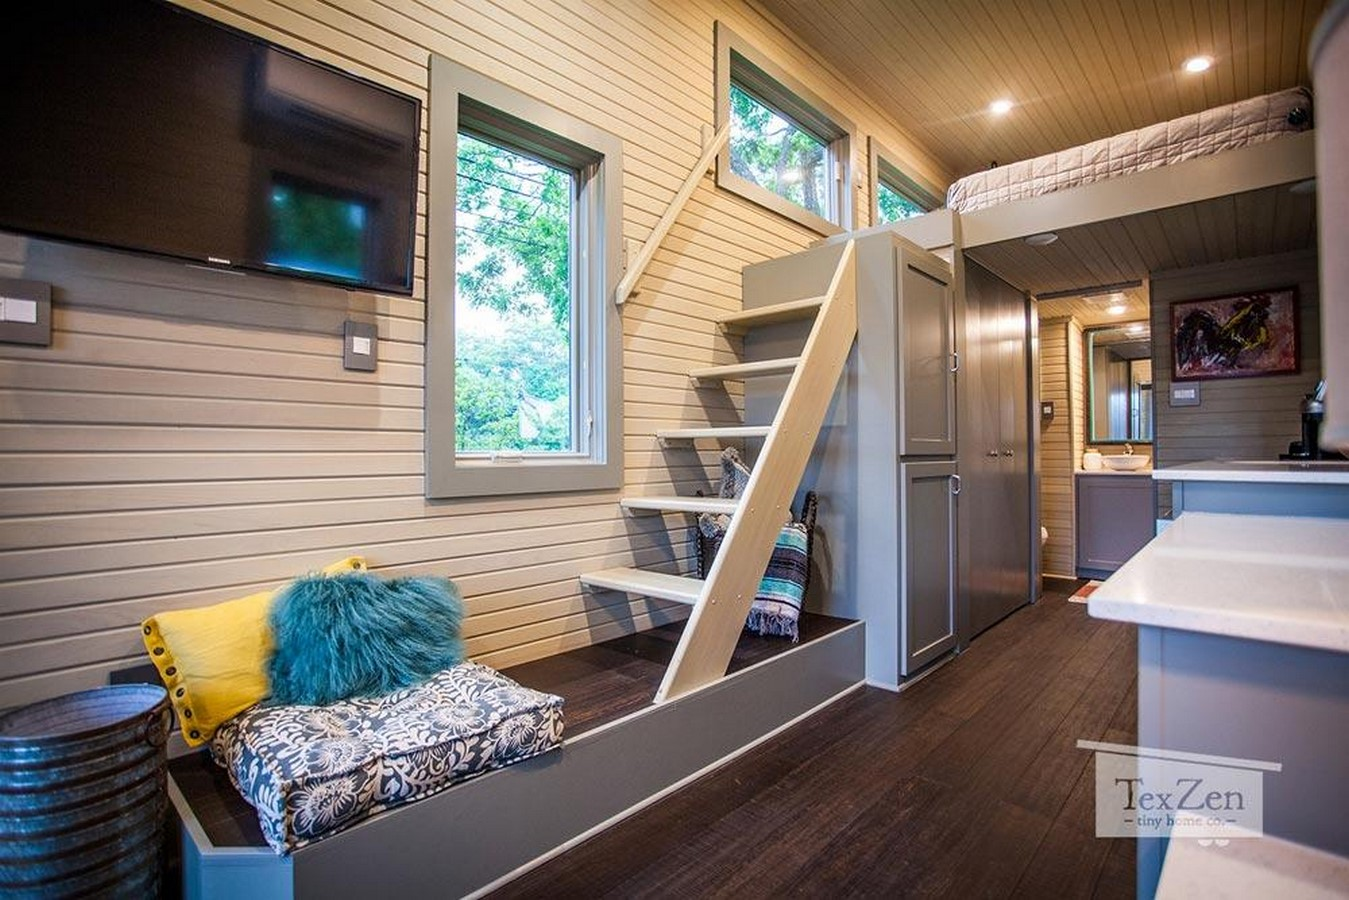 20 Trendy space saving solutions for tiny homes - Sheet12